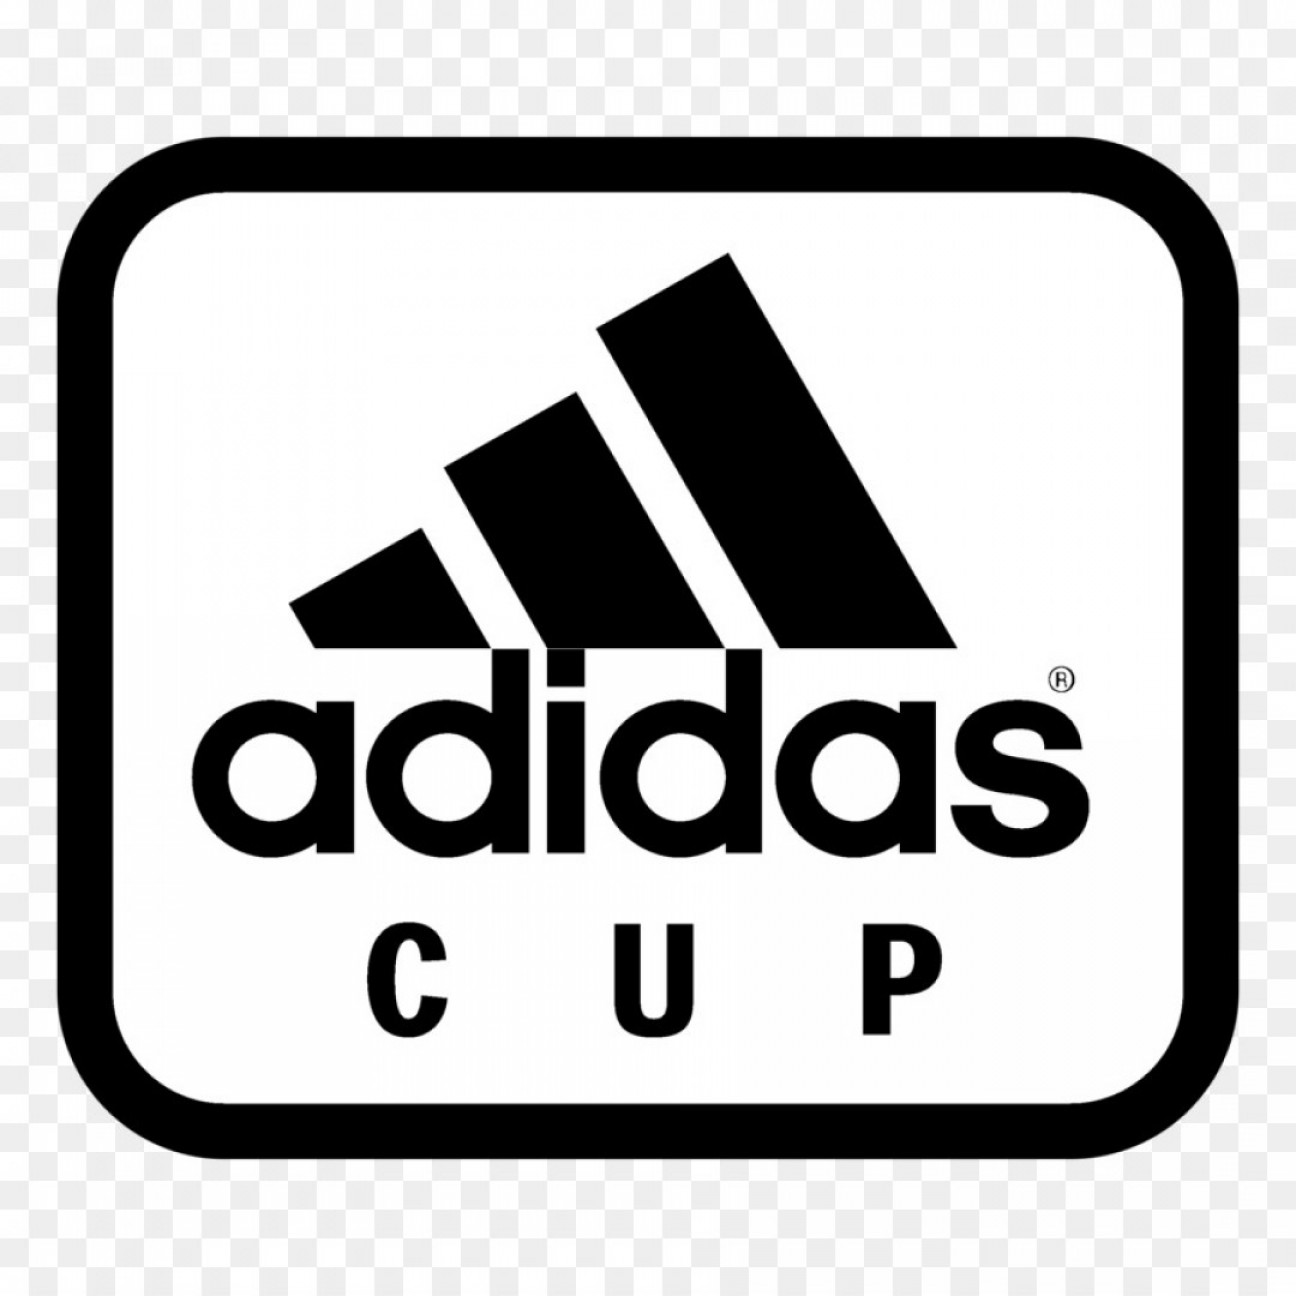 Adidas Brand Vector: Png Adidas Clip Art Sneakers Brand Technology Adidas C